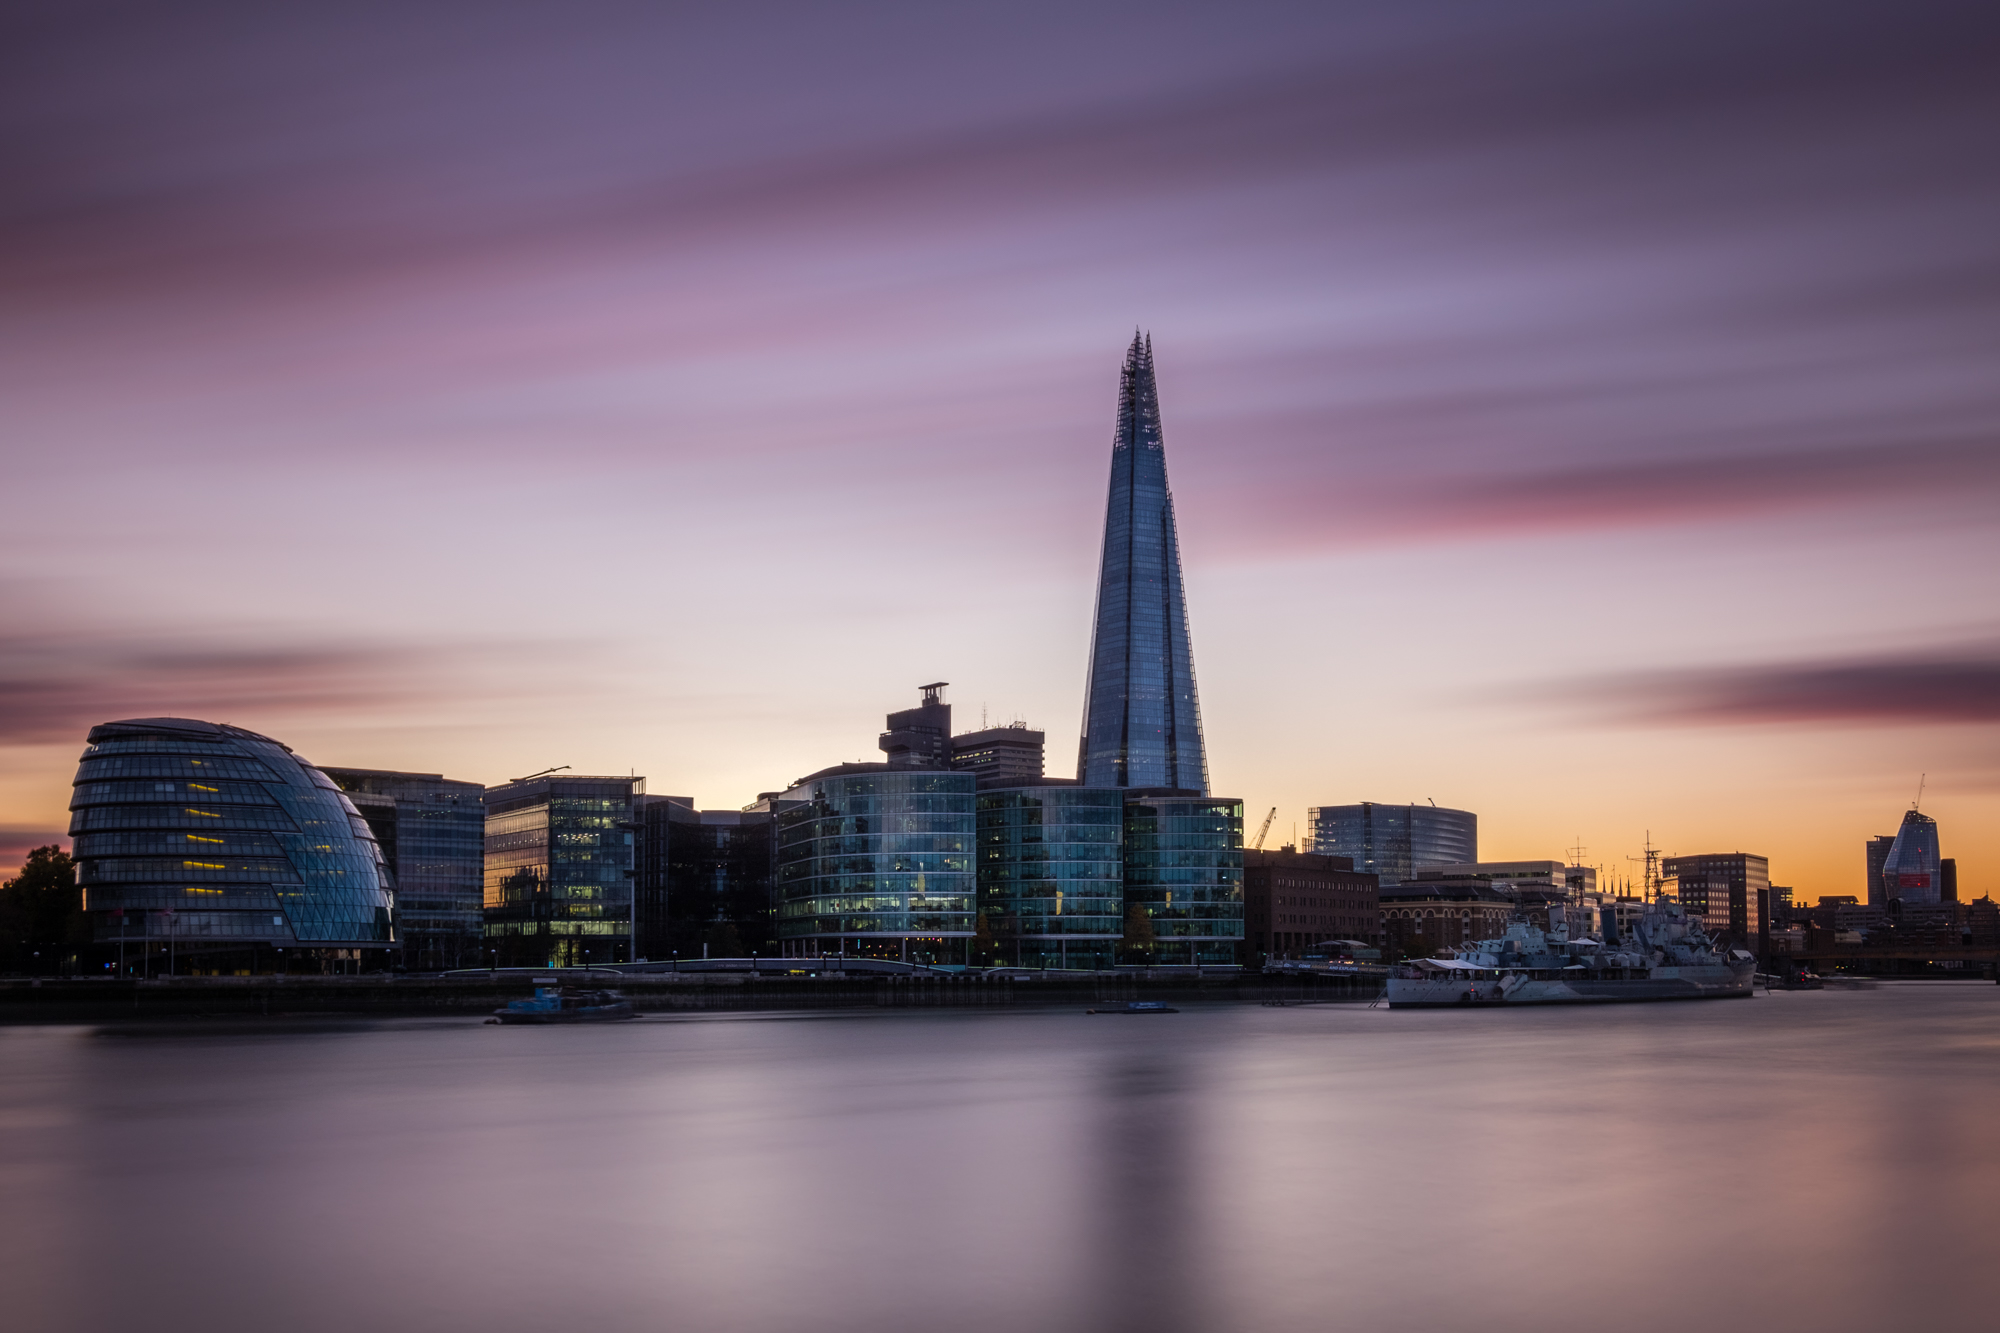 A photo of the Shard at sunset in London taken by Trevor Sherwin